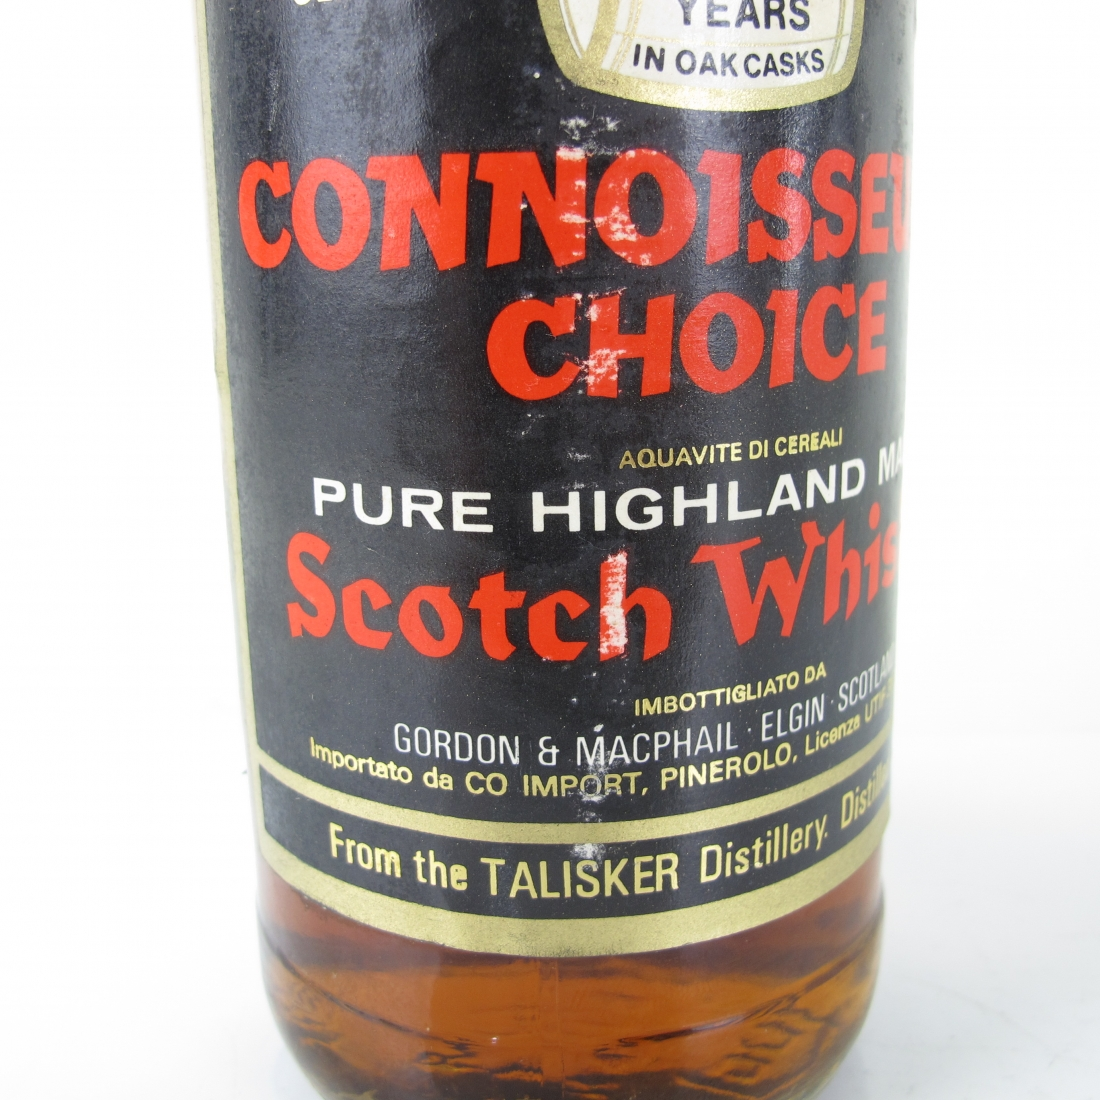 Talisker 1953 Gordon and MacPhail 24 Year Old / Pinerolo